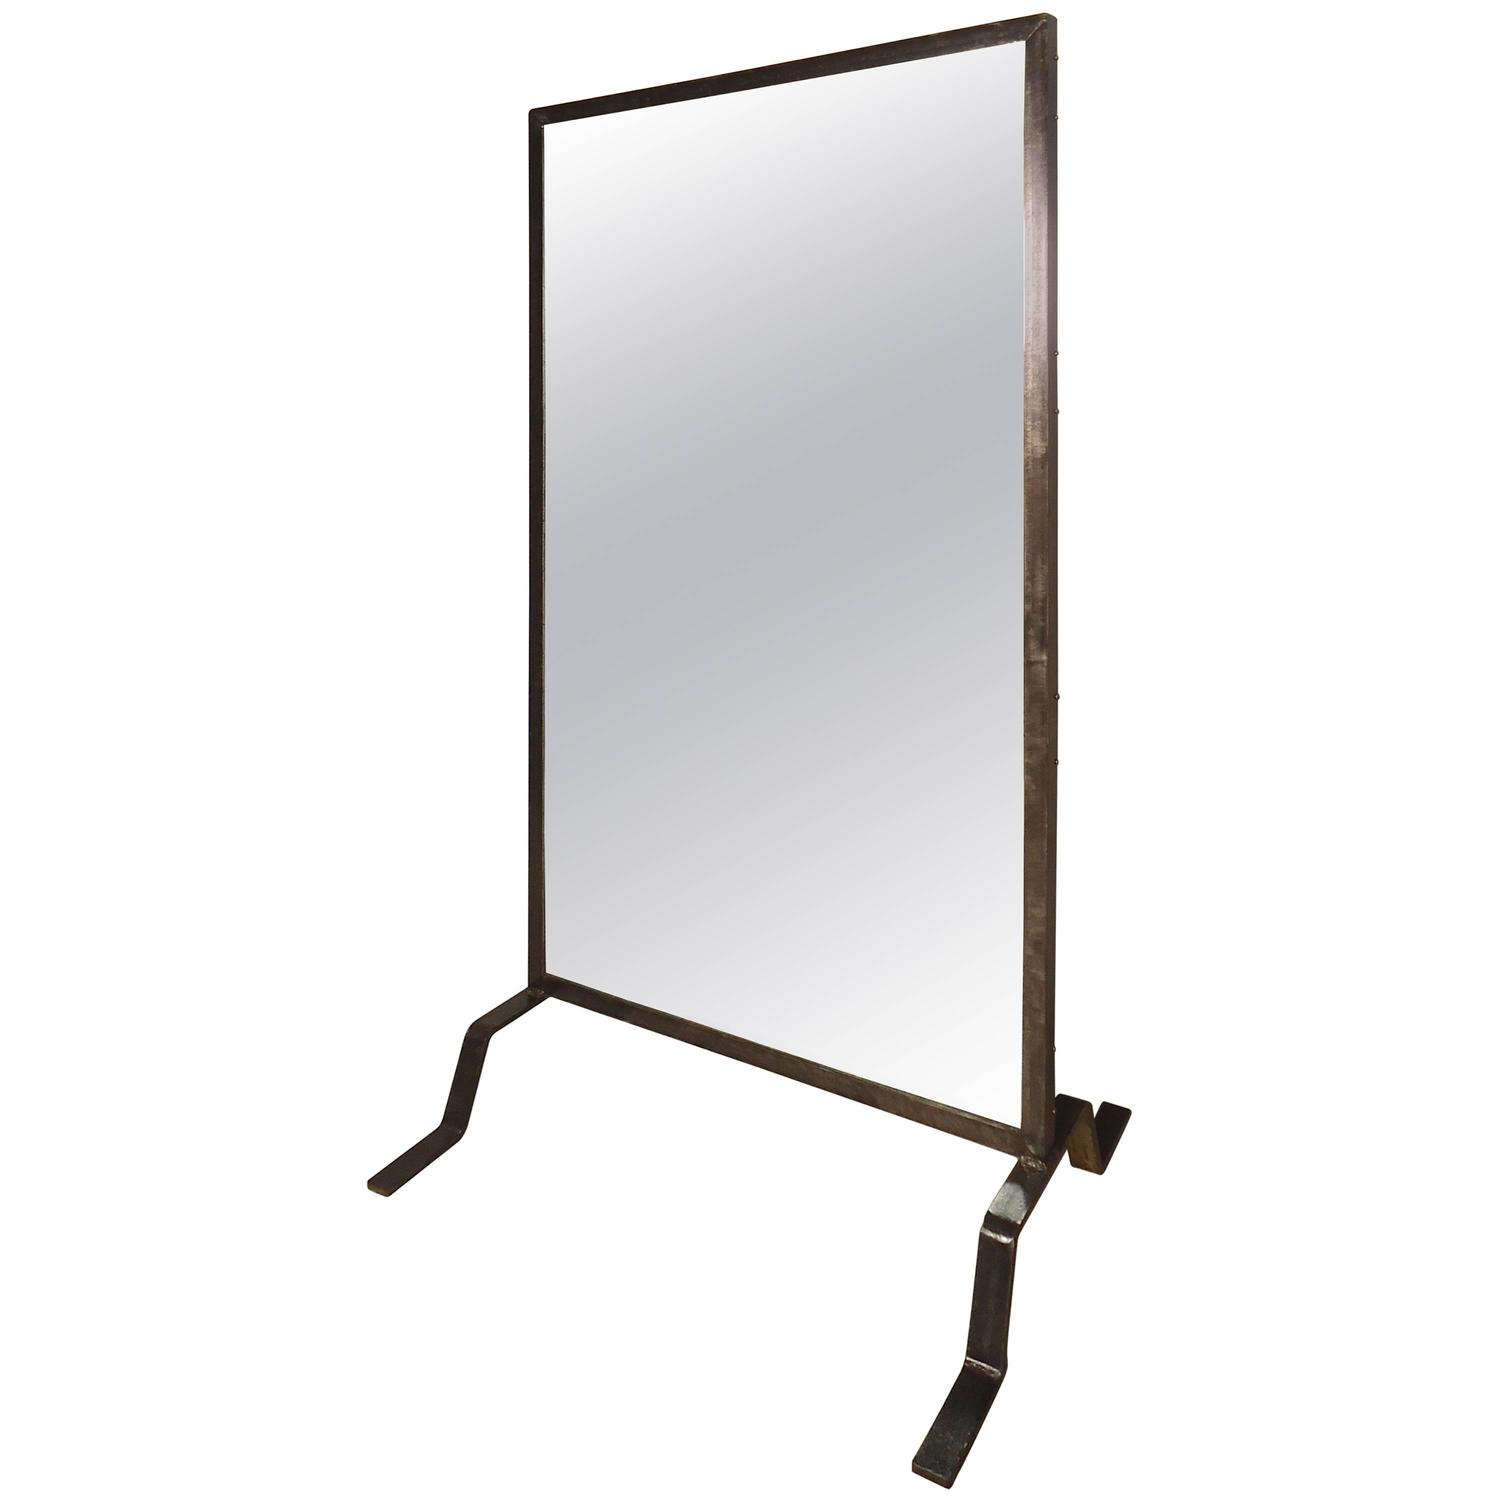 Immense industrial standing mirror for sale at 1stdibs for Floor length mirror for sale